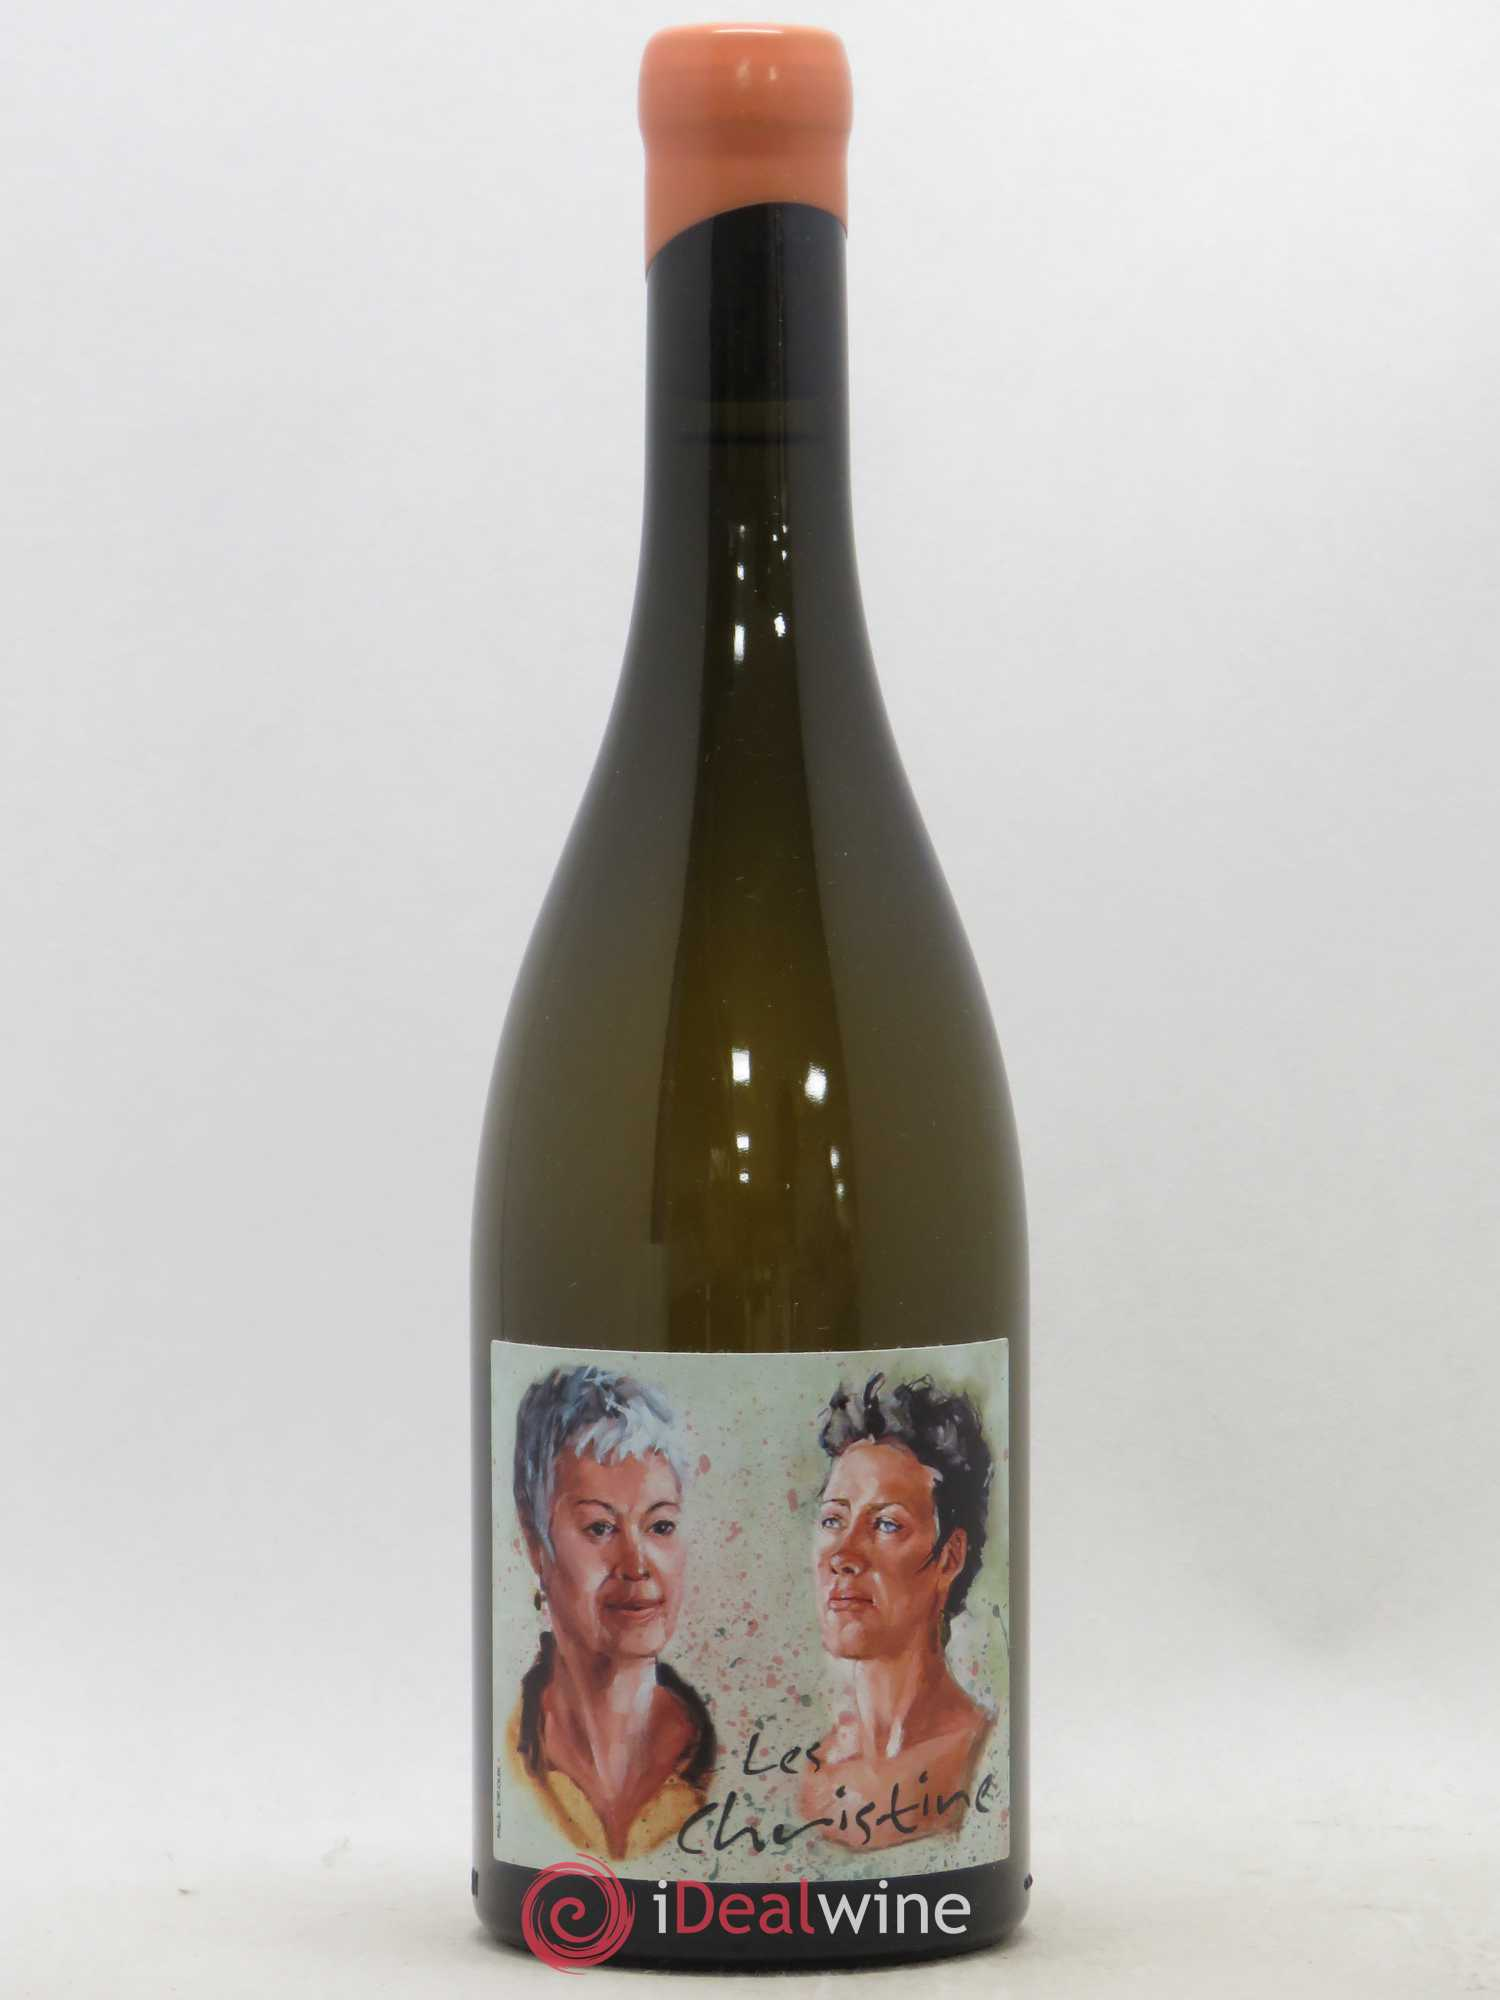 Vin de Savoie Chignin-Bergeron Les Christine Gilles Berlioz (no reserve) 2018 - Lot of 1 Bottle